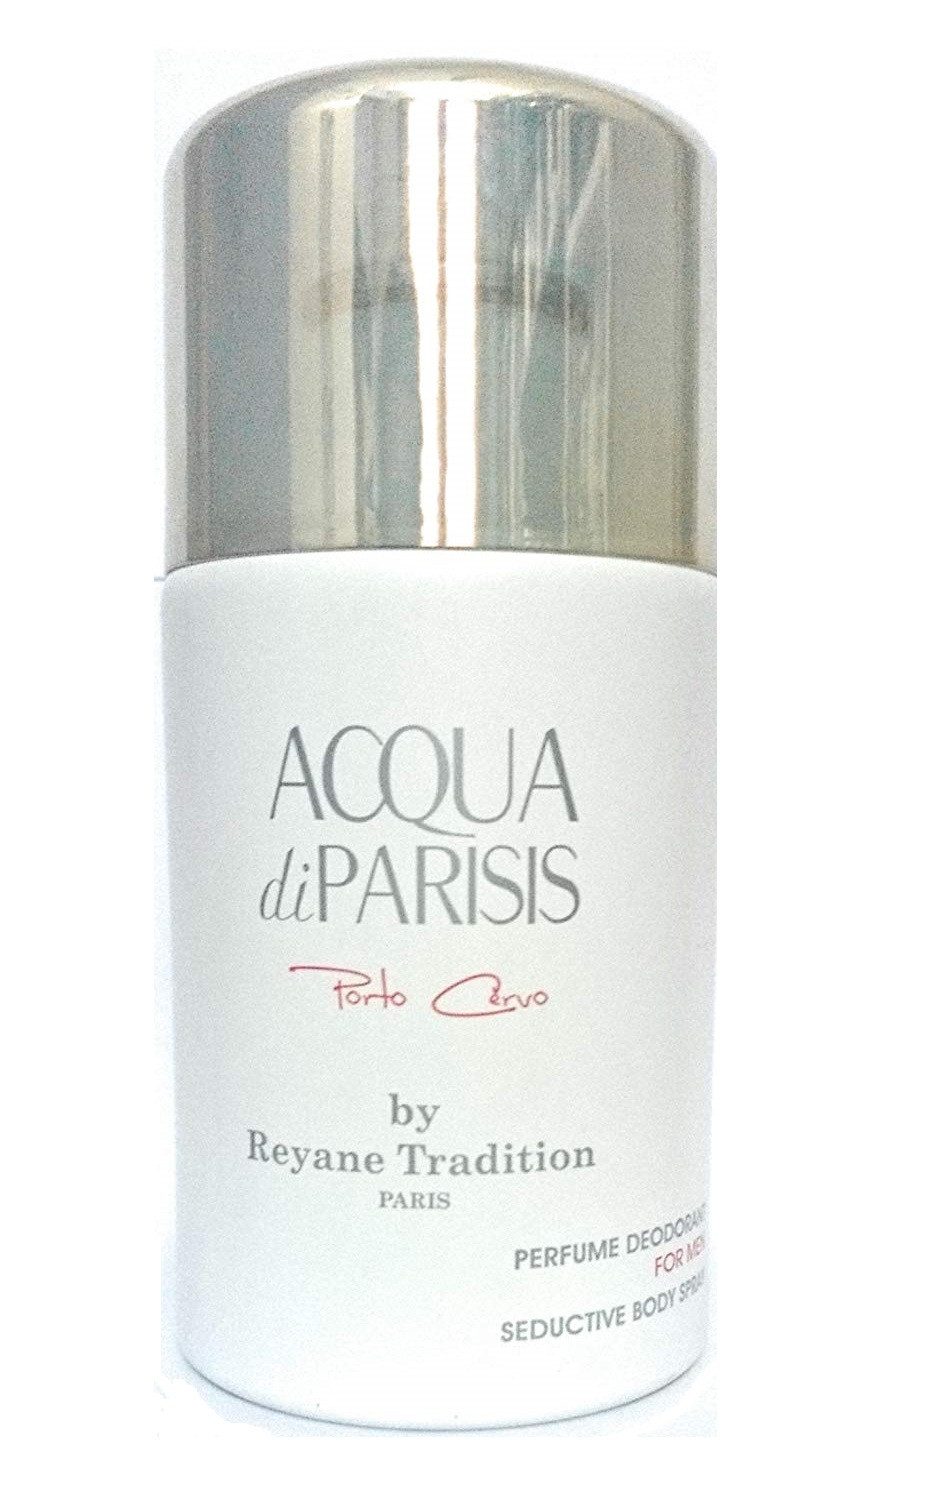 Reyane Tradition Acqua Di Parisis Porto Cervo Deo for men 250ML